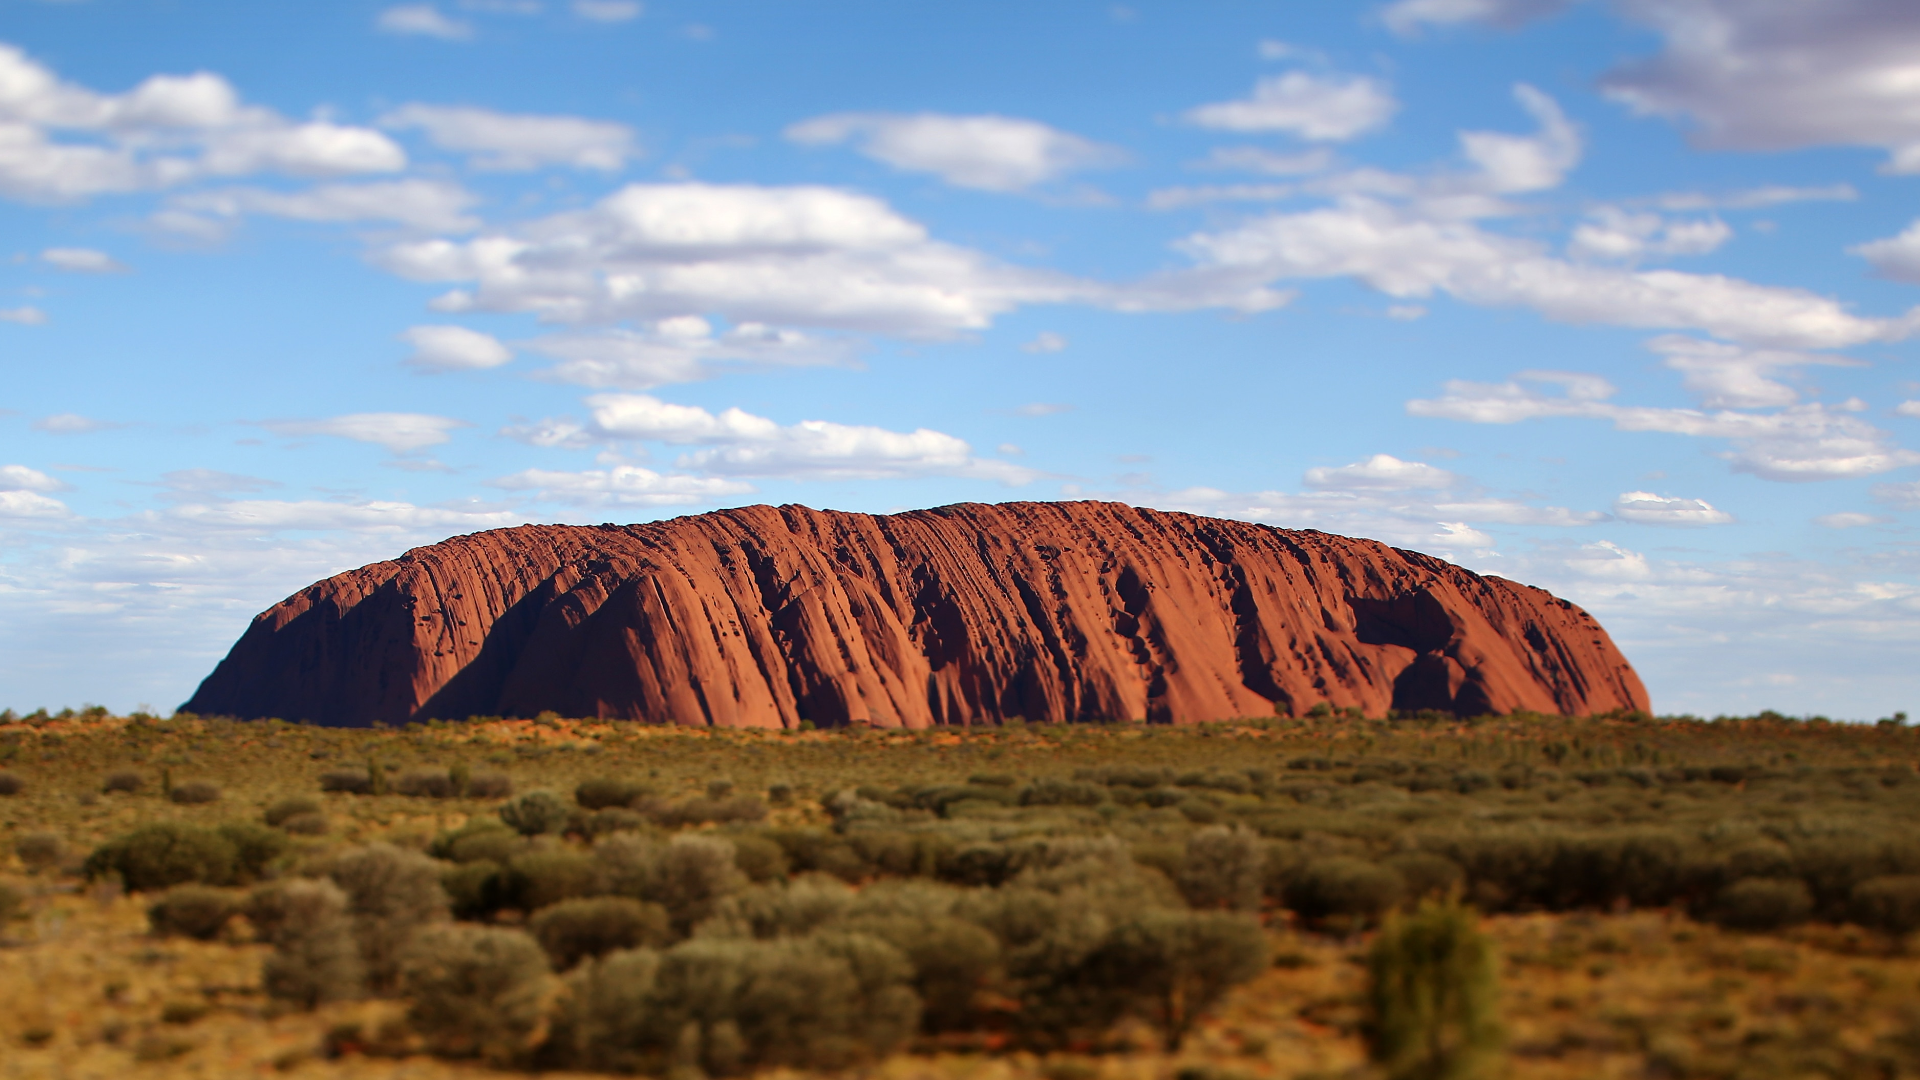 Aborigines say Uluru is sacred. Tourists rushing to beat a hiking ban are trashing it.